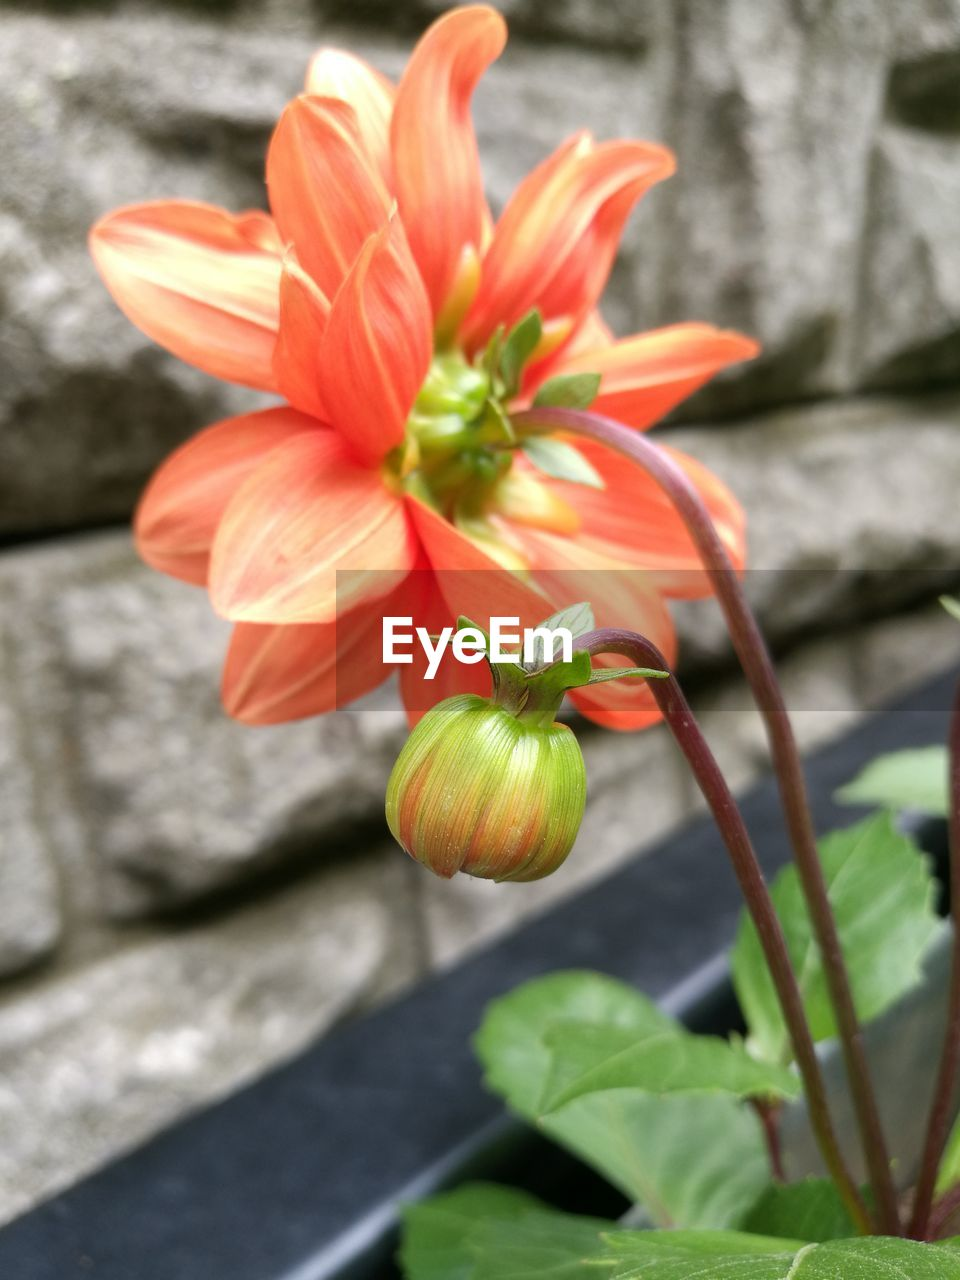 flower, flowering plant, plant, freshness, growth, beauty in nature, petal, fragility, vulnerability, close-up, flower head, inflorescence, nature, focus on foreground, no people, day, plant part, leaf, botany, red, outdoors